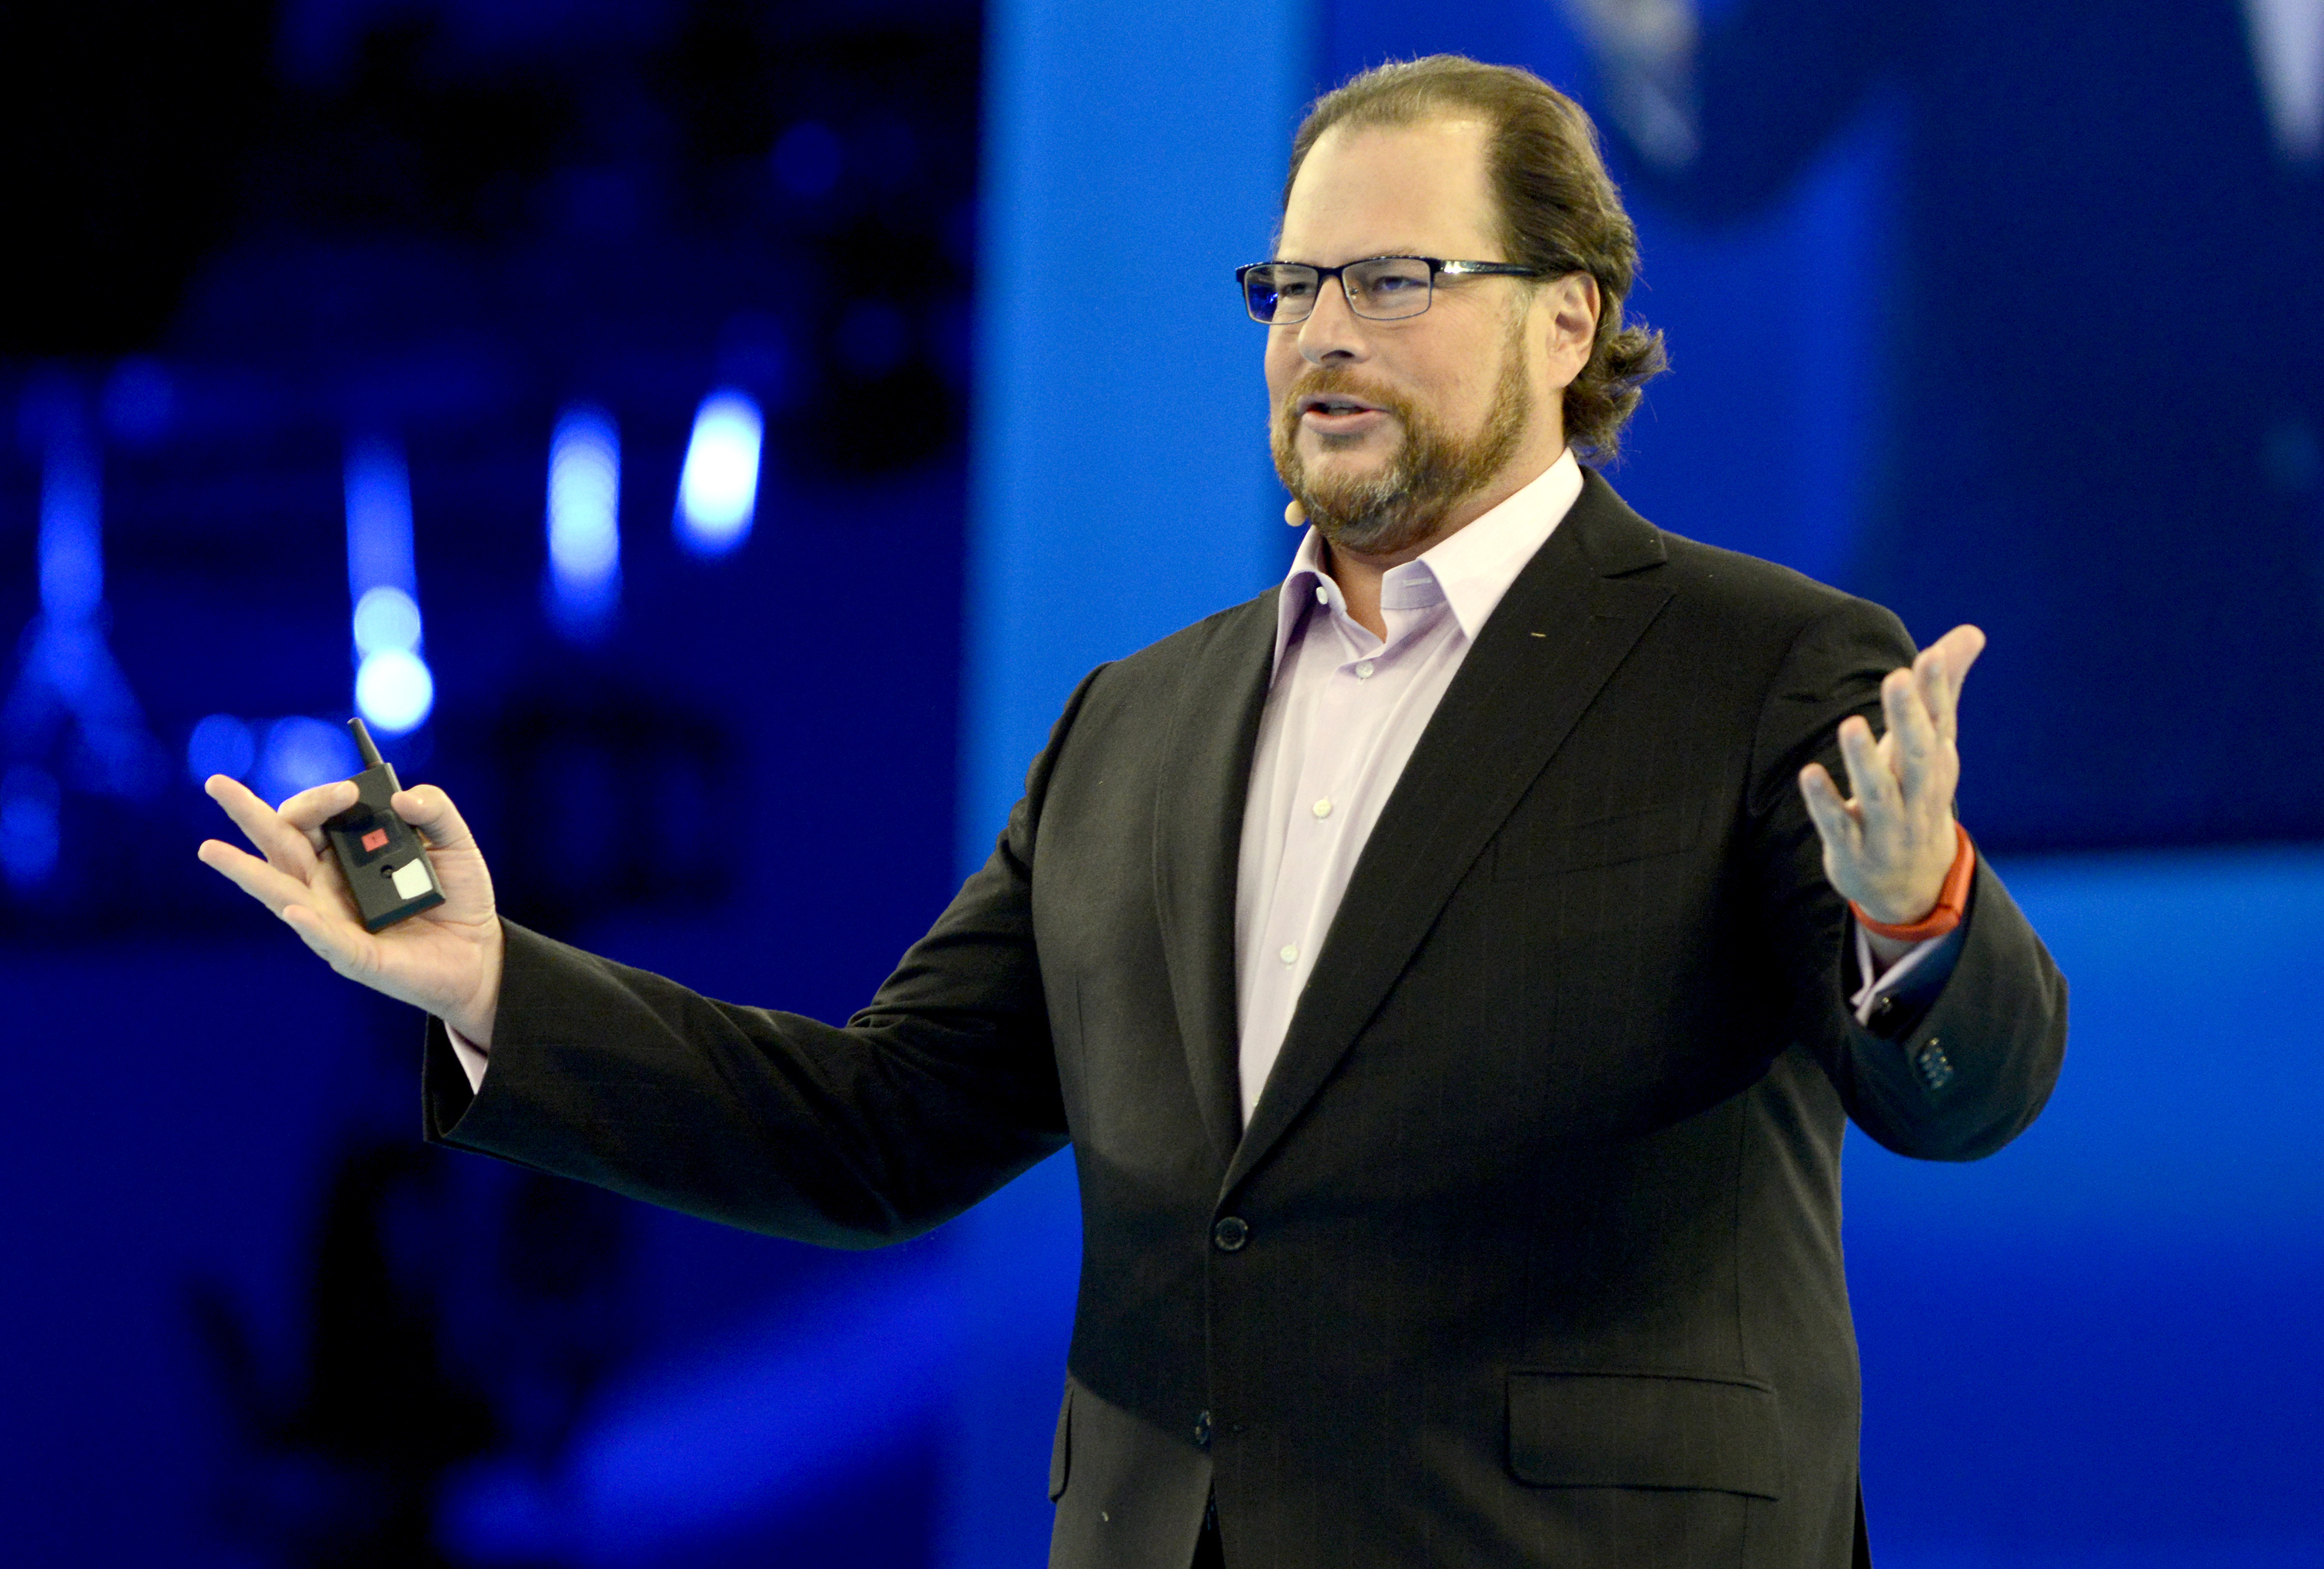 Marc Benioff delivers the keynote speech at Salesforce.com's Dreamforce 2014 Conference at Moscone South on October 14, 2014 in San Francisco, California.